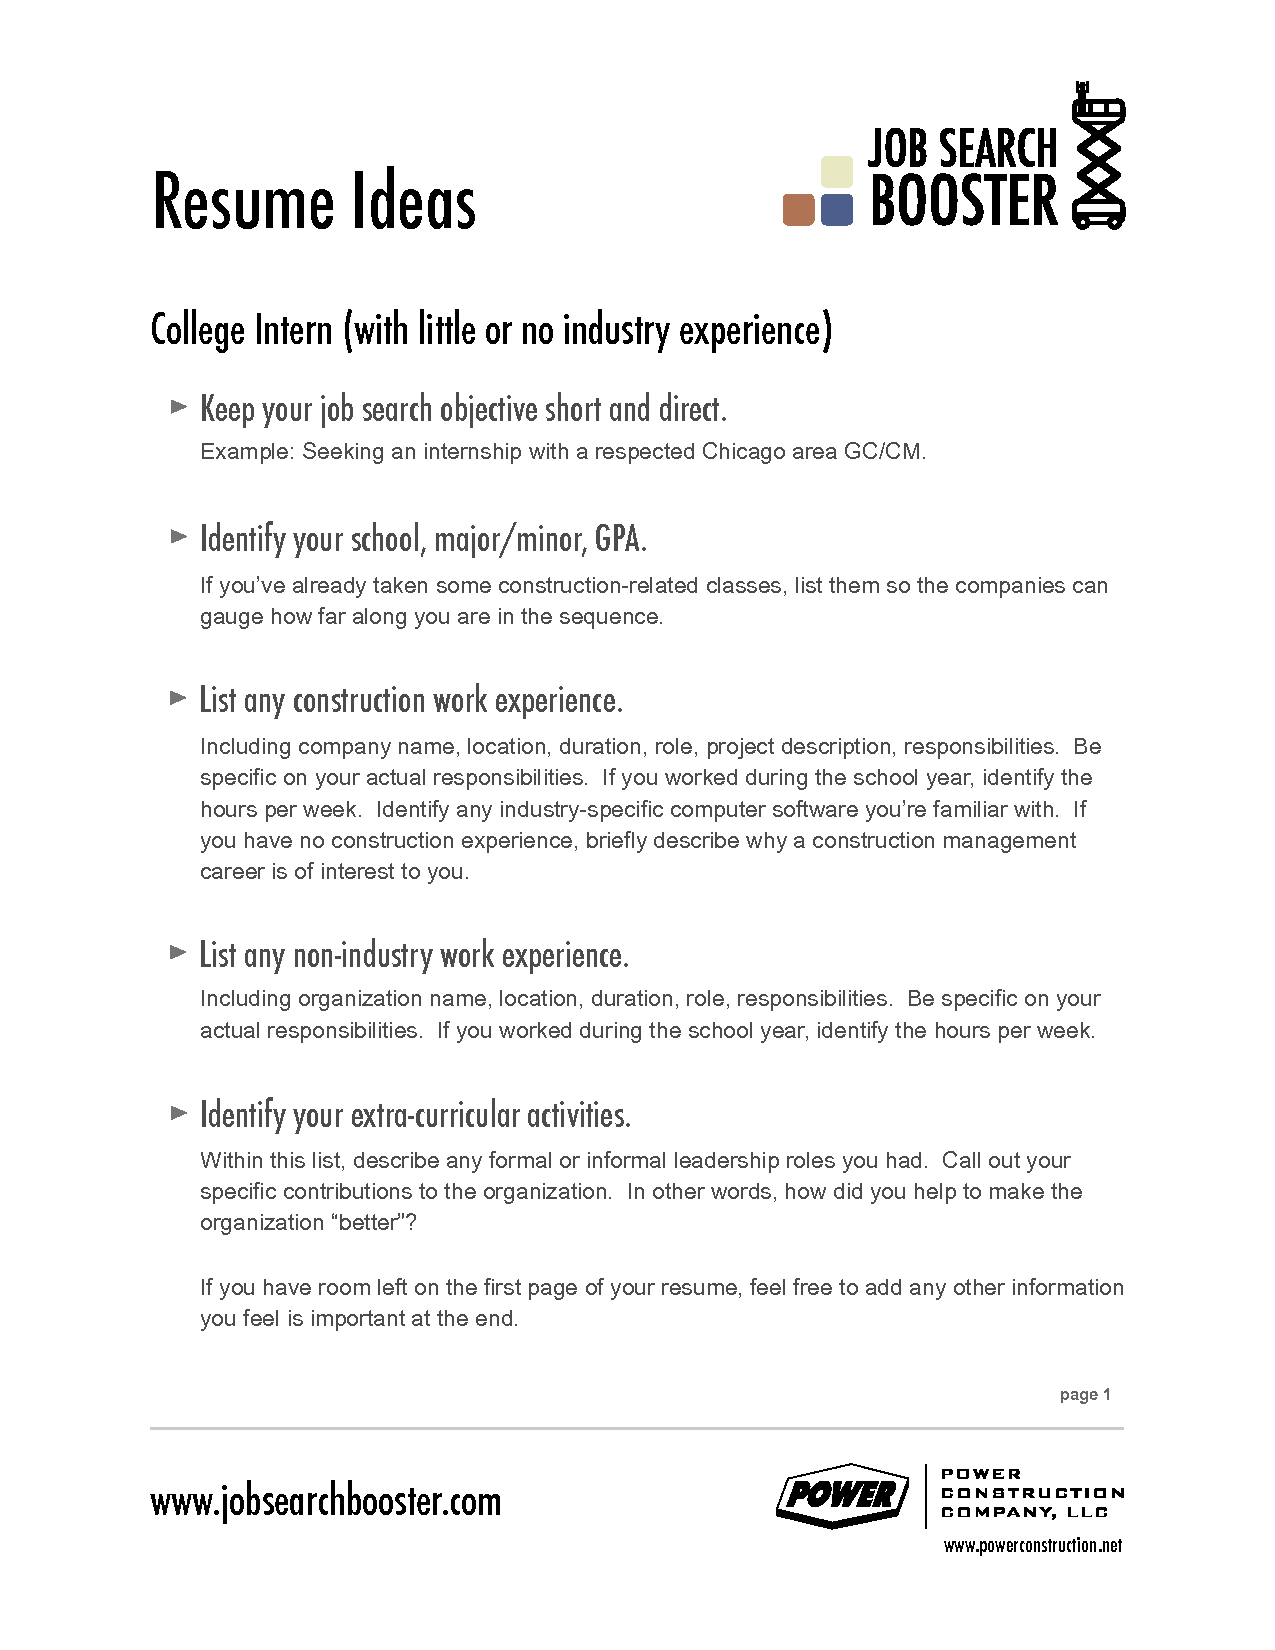 Cover Letter Resume Career Objectives Resume Templatewriting